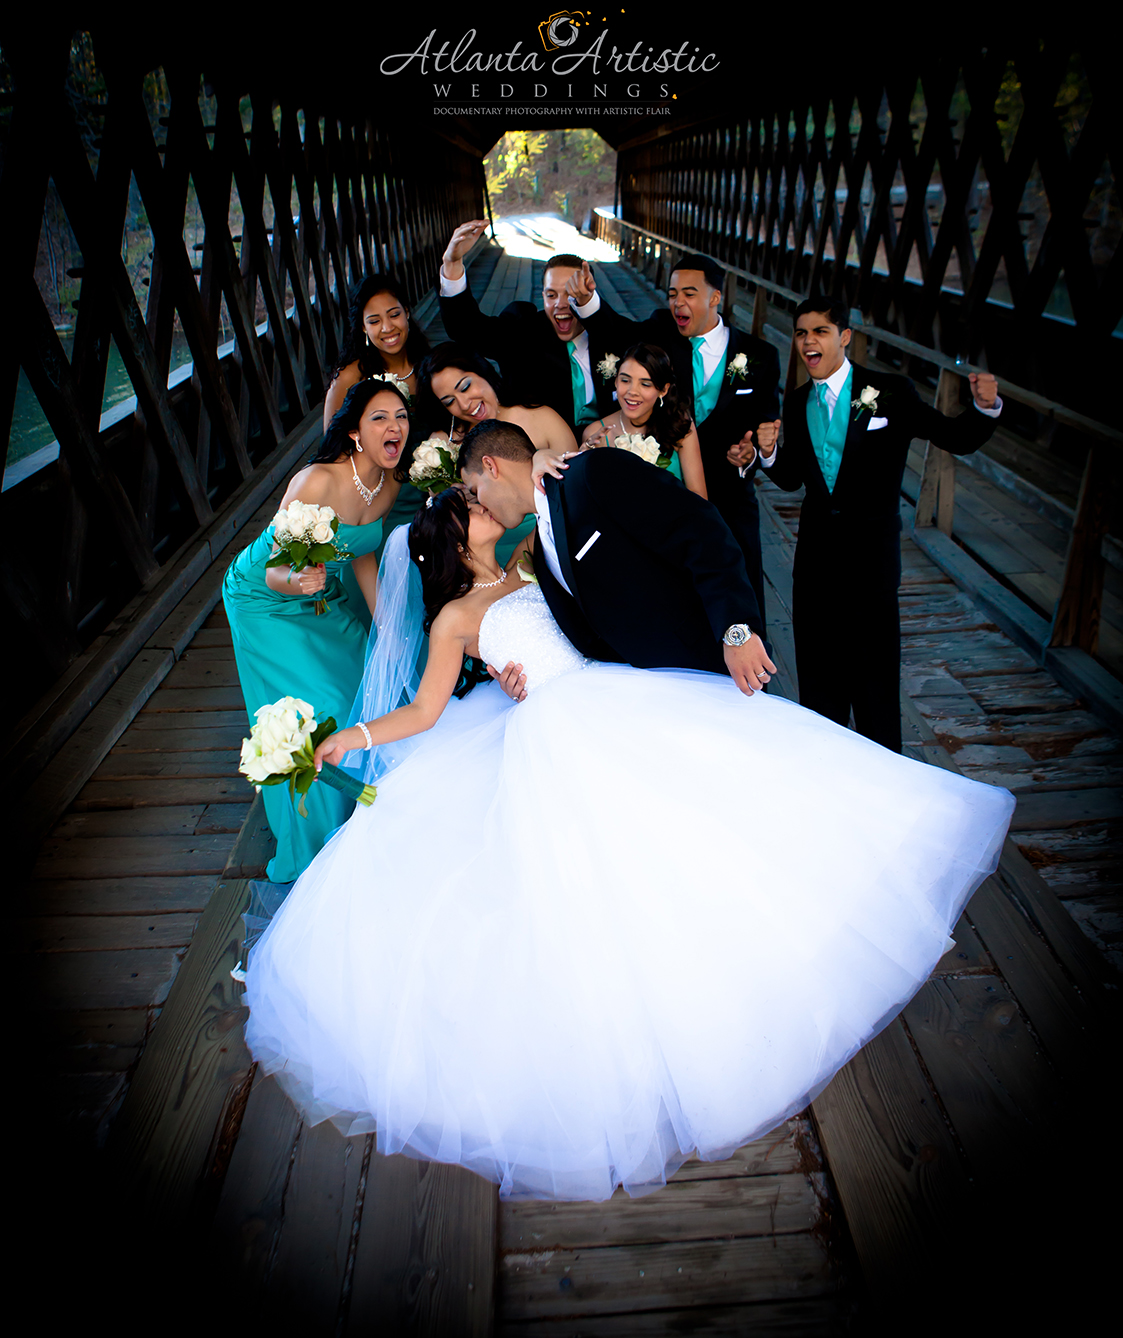 Award winning wedding photography by  www.atlantaartisticweddings.com